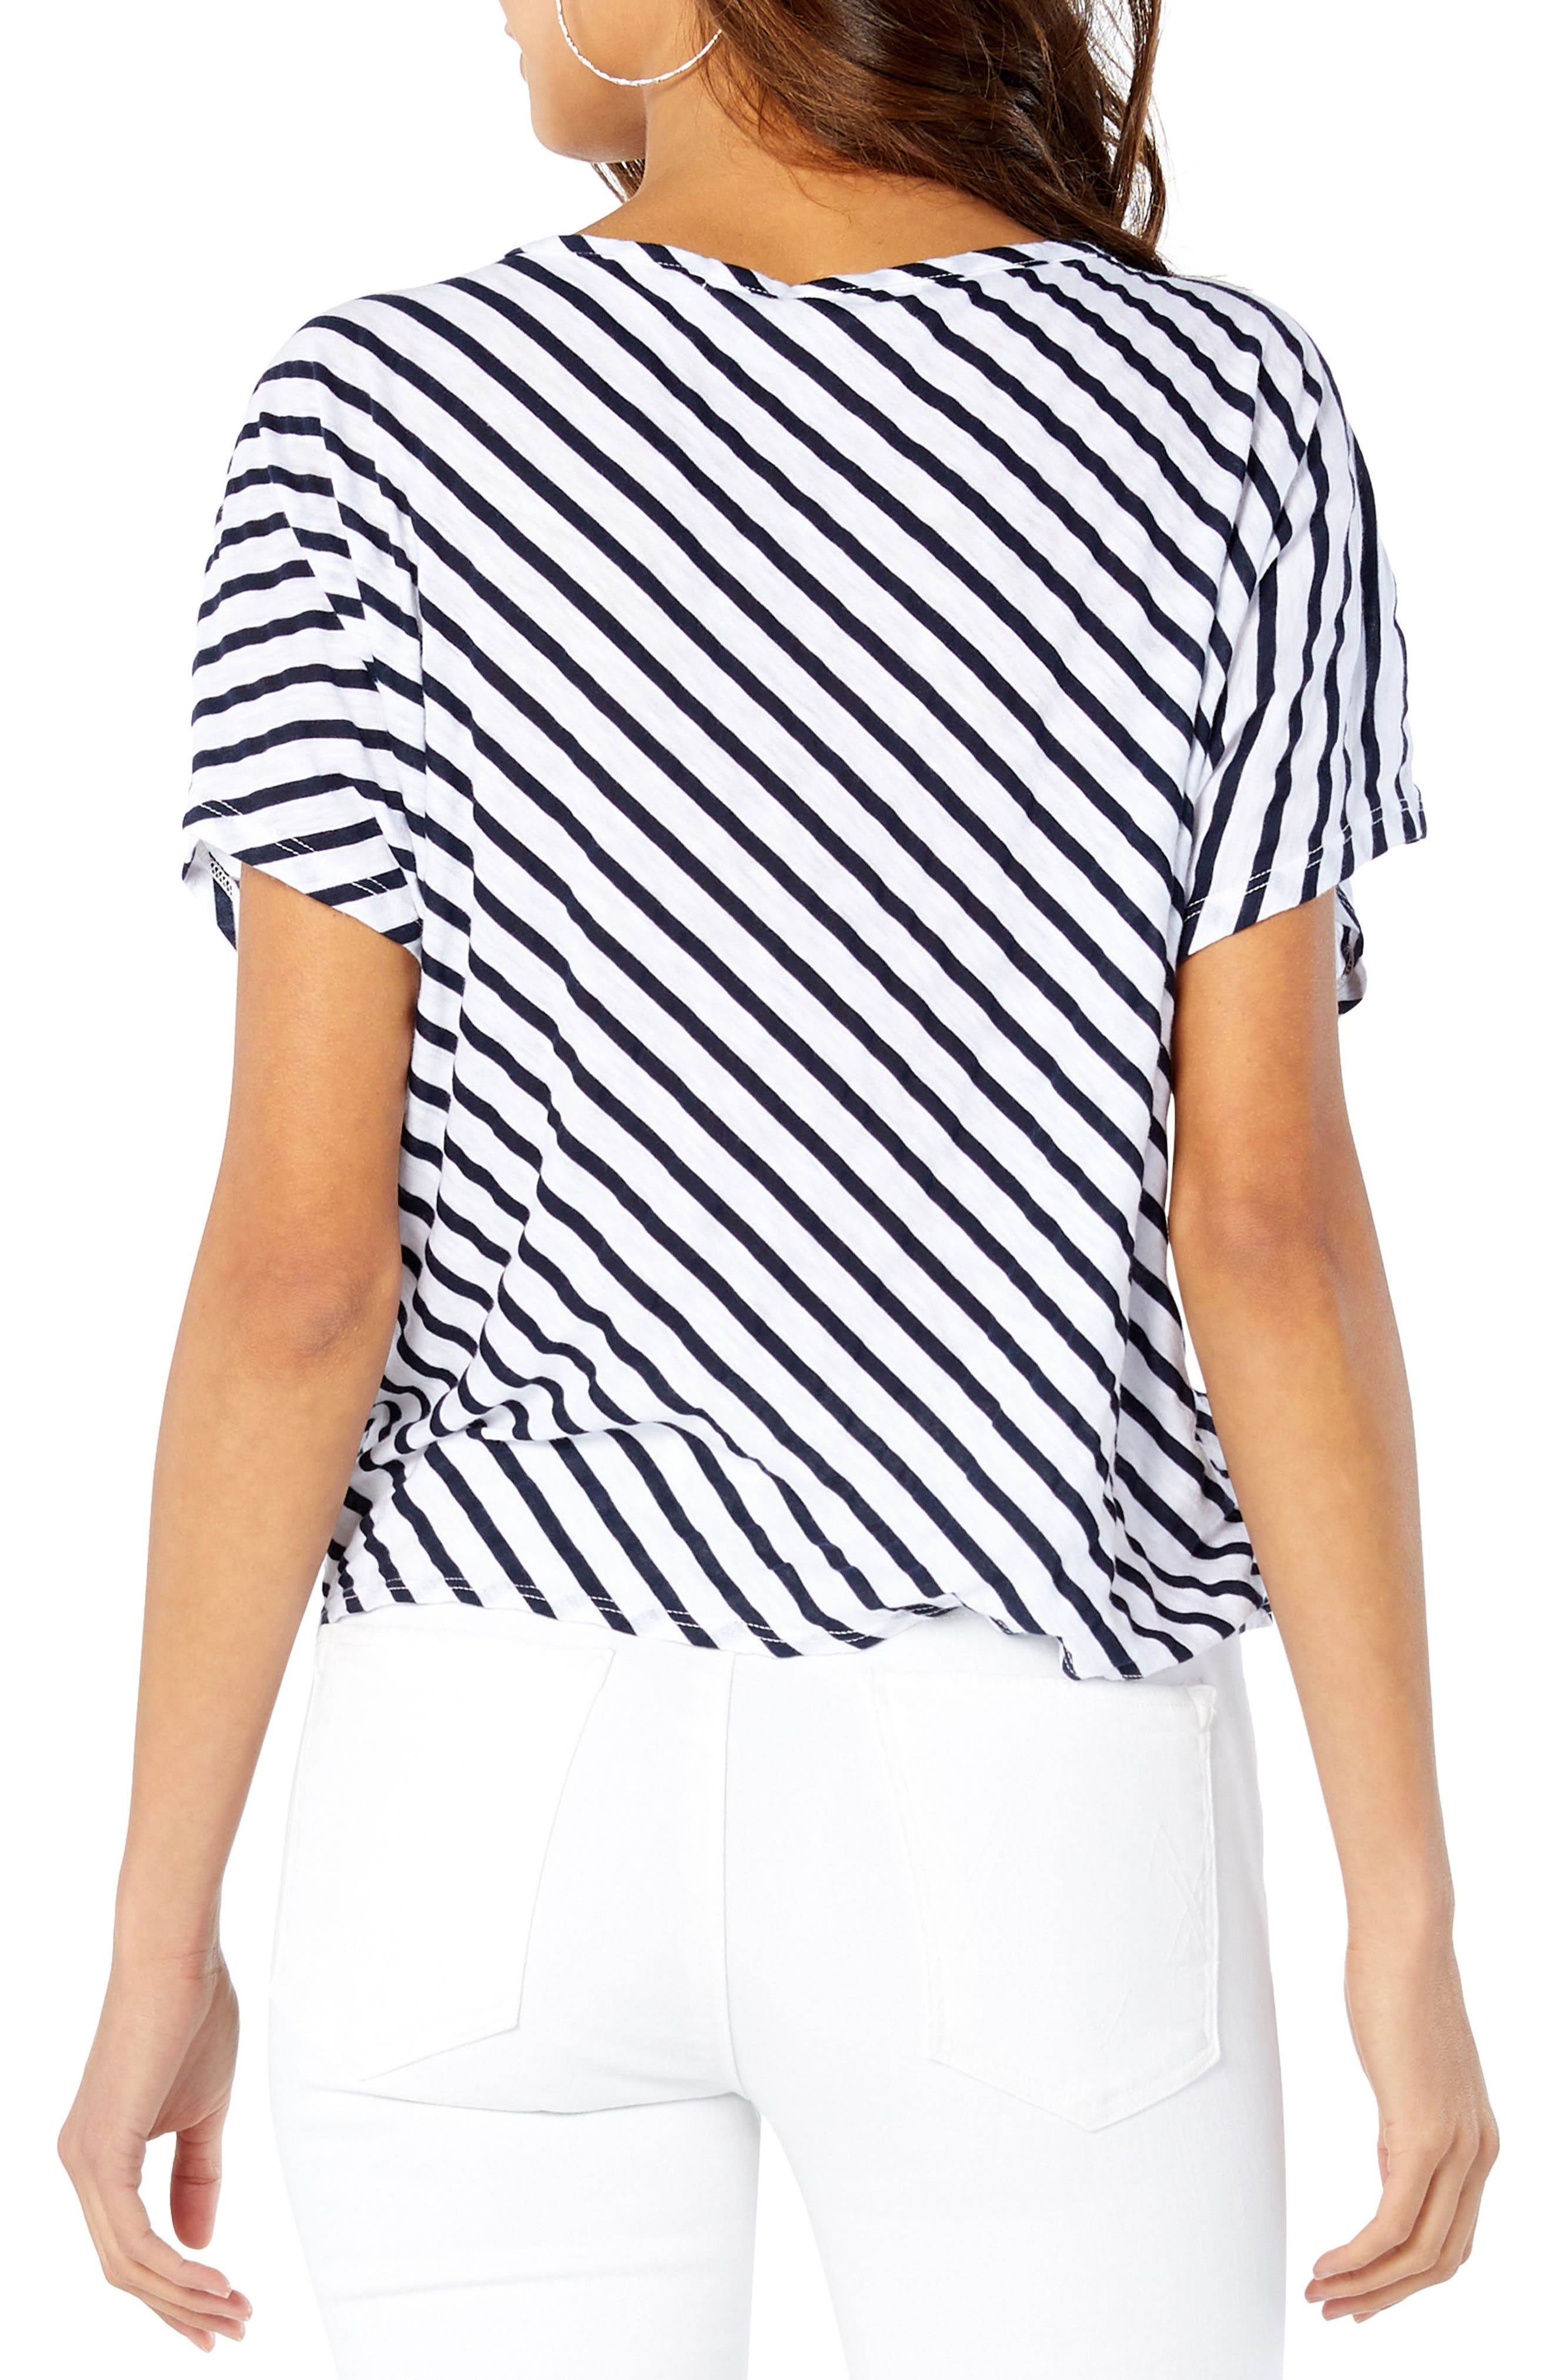 Riviera Tie Front Top,                             Alternate thumbnail 2, color,                             White